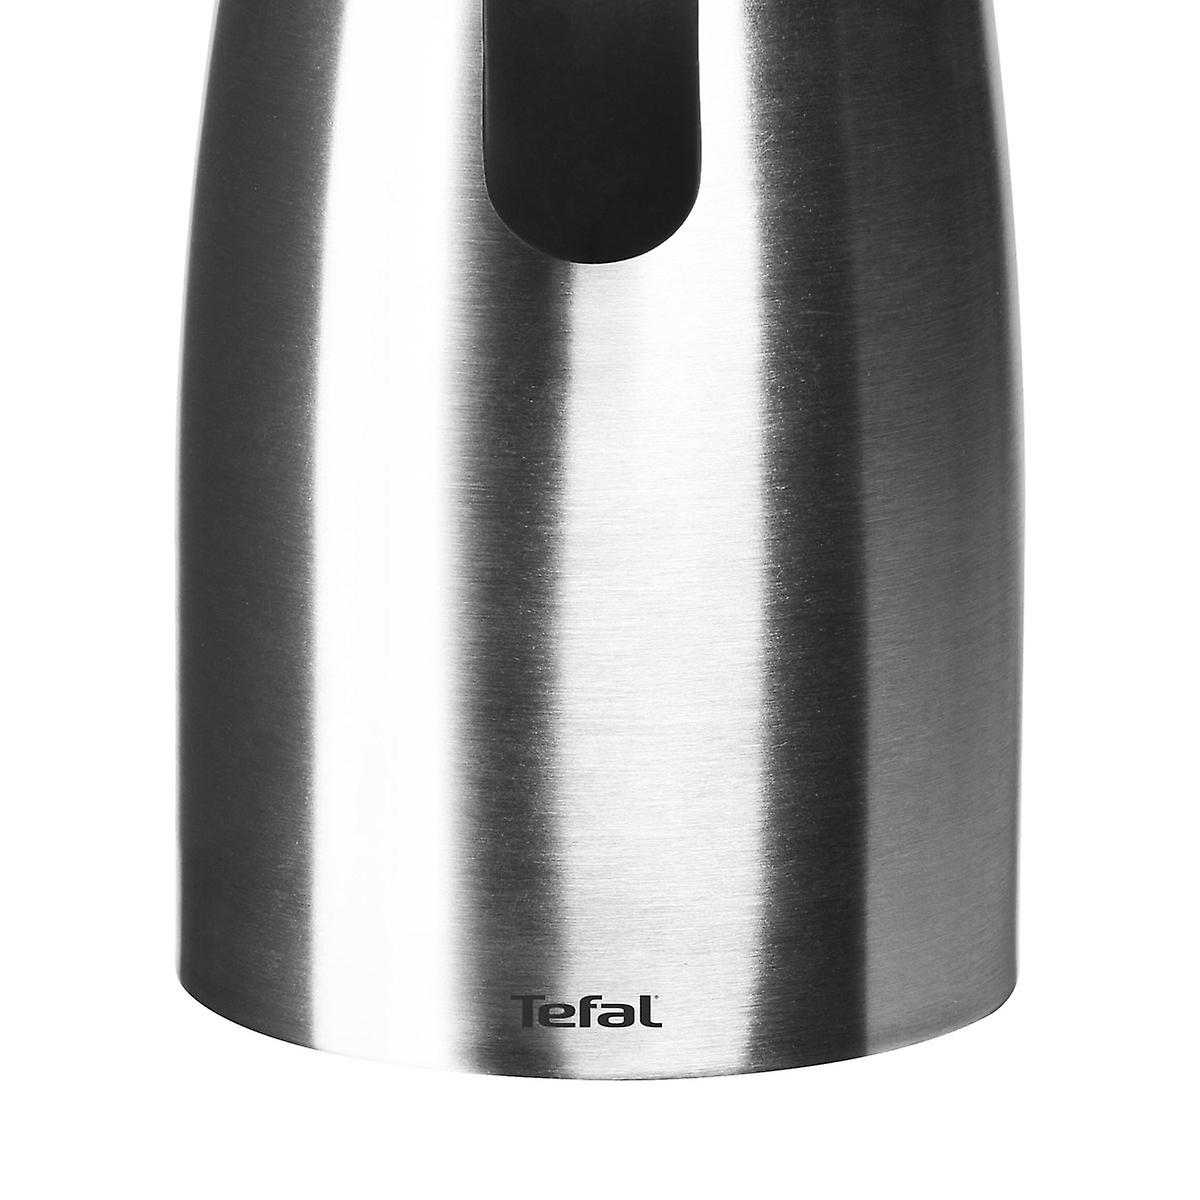 Tefal Thermal 1.5L Soft Grip Stainless Steel Insulated Jug 5 Year Guarantee